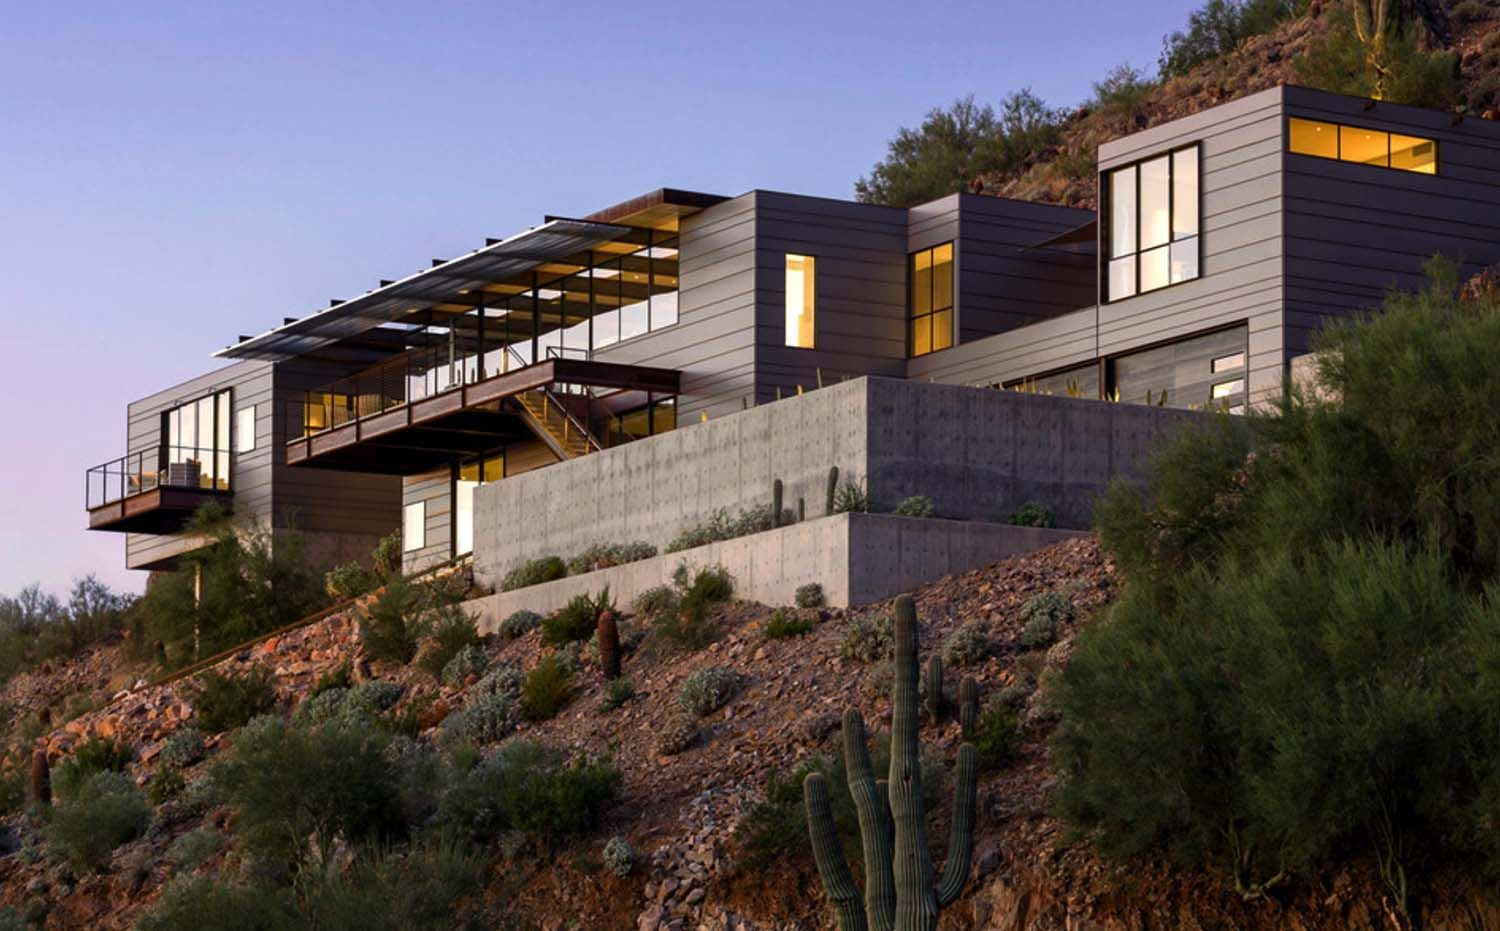 Concrete glass and steel structure hovers above arizona desert